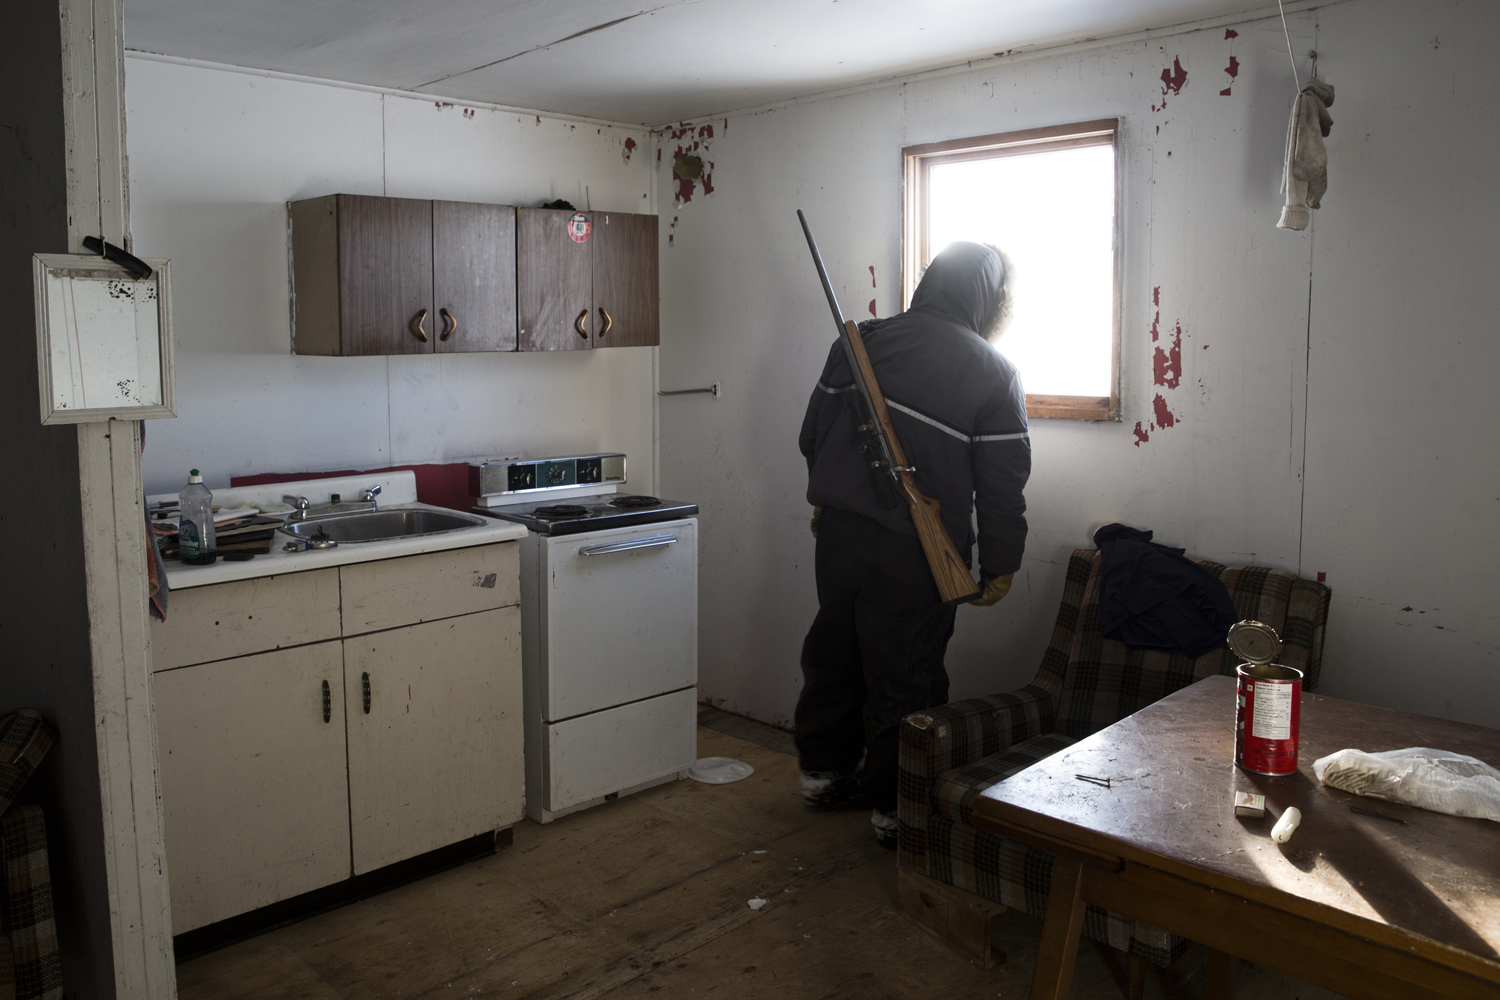 Arviat, Canada, Oct. 19, 2013. Brian Tagalik, 28, peers out the window of a house during a hunting trip. Born in the Arctic and schooled in the south of Canada, Brian says he feels lost between the modern way of life and the dying traditions of his ancestors.